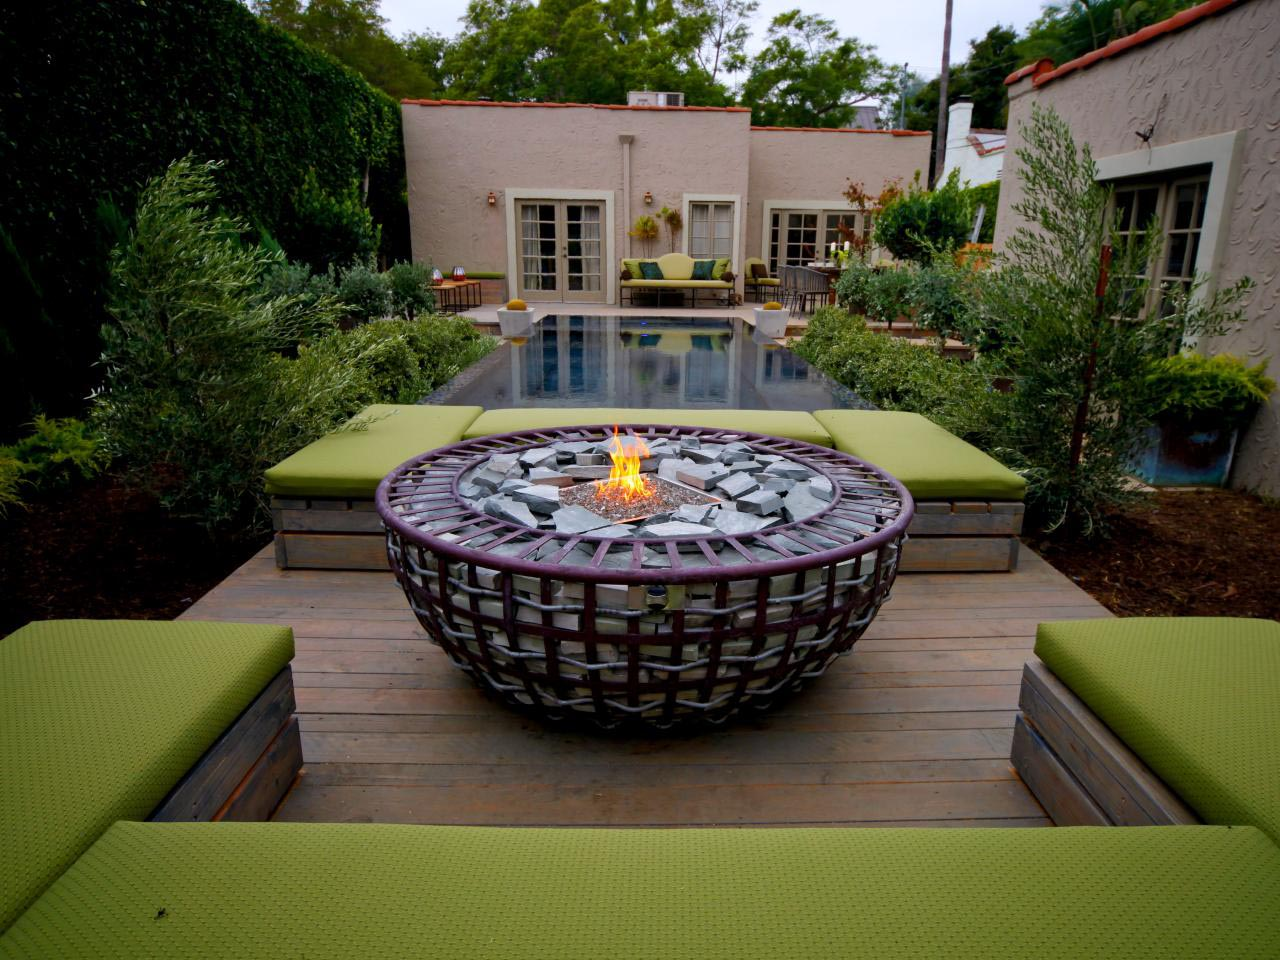 Simple backyard fire pit ideas fire pit design ideas for Outdoor garden design